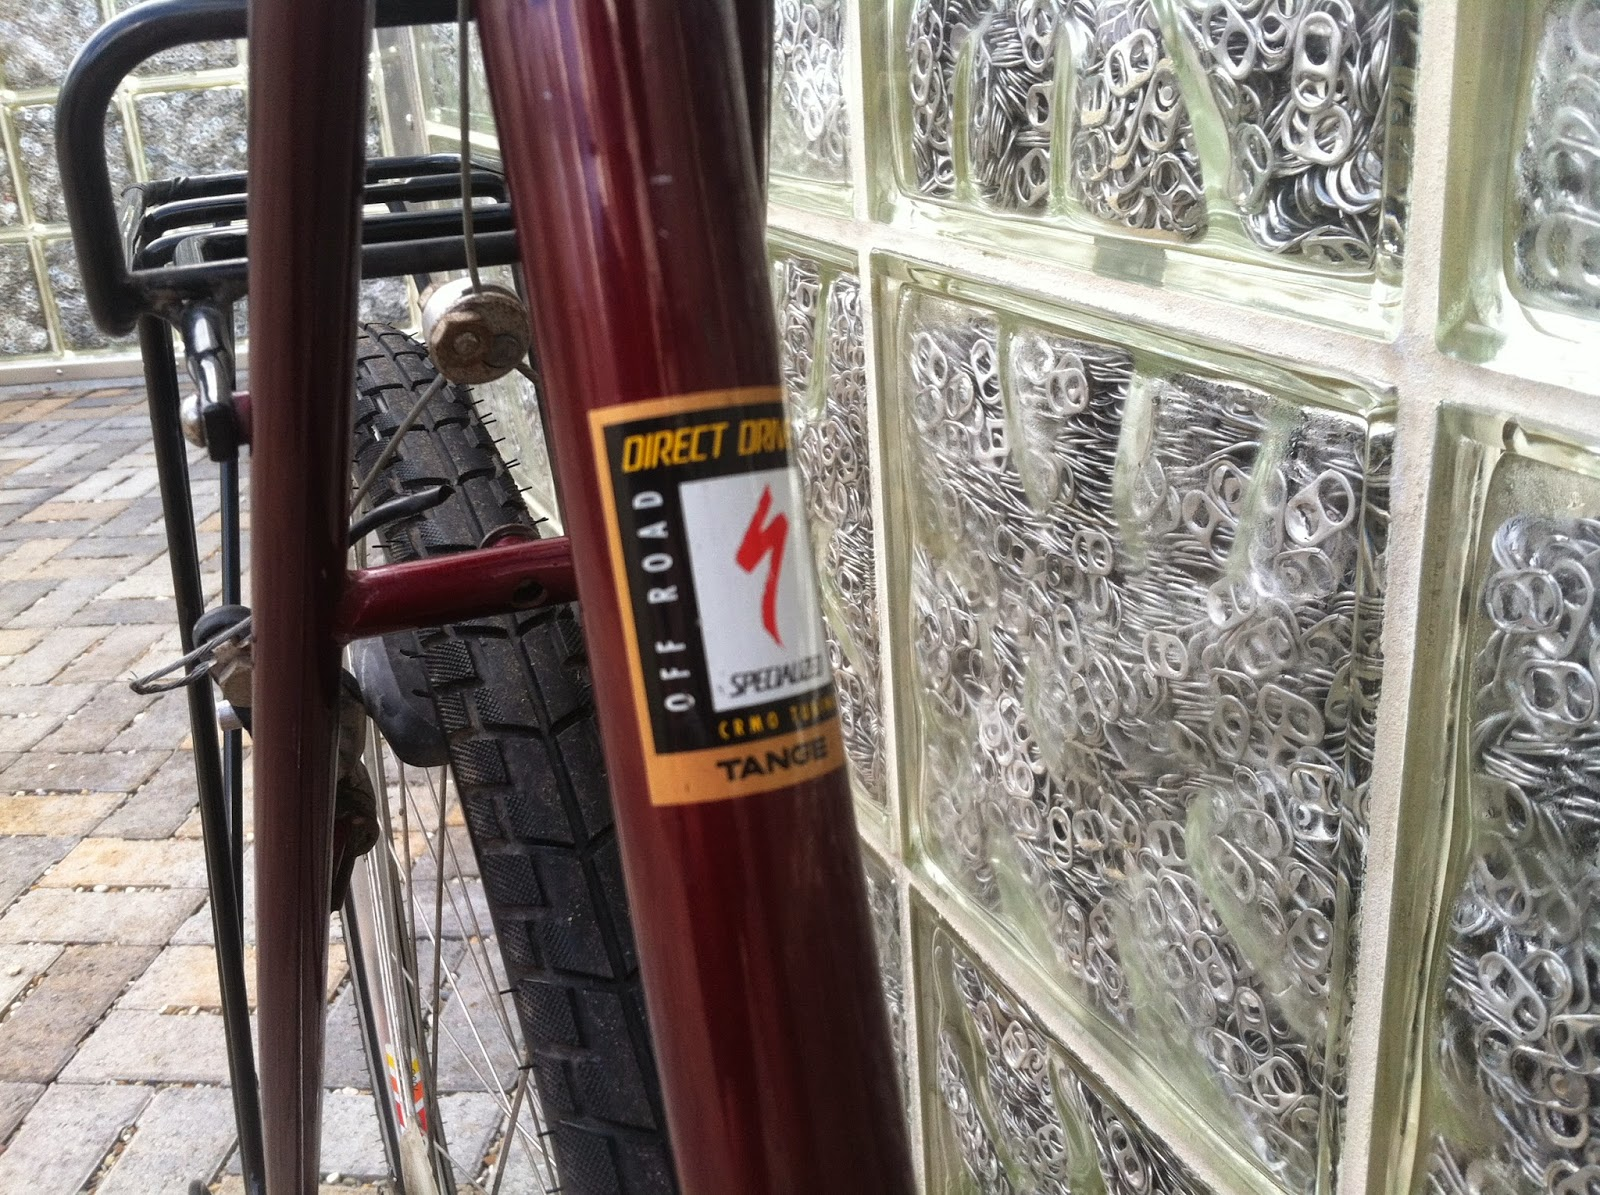 Hi I Have A Bike Frame That The Decal Says It Has Specialized Direct Drive Off Road Tange CRMO Tubing Does Anyone Know What Is Straight Gauge 4130